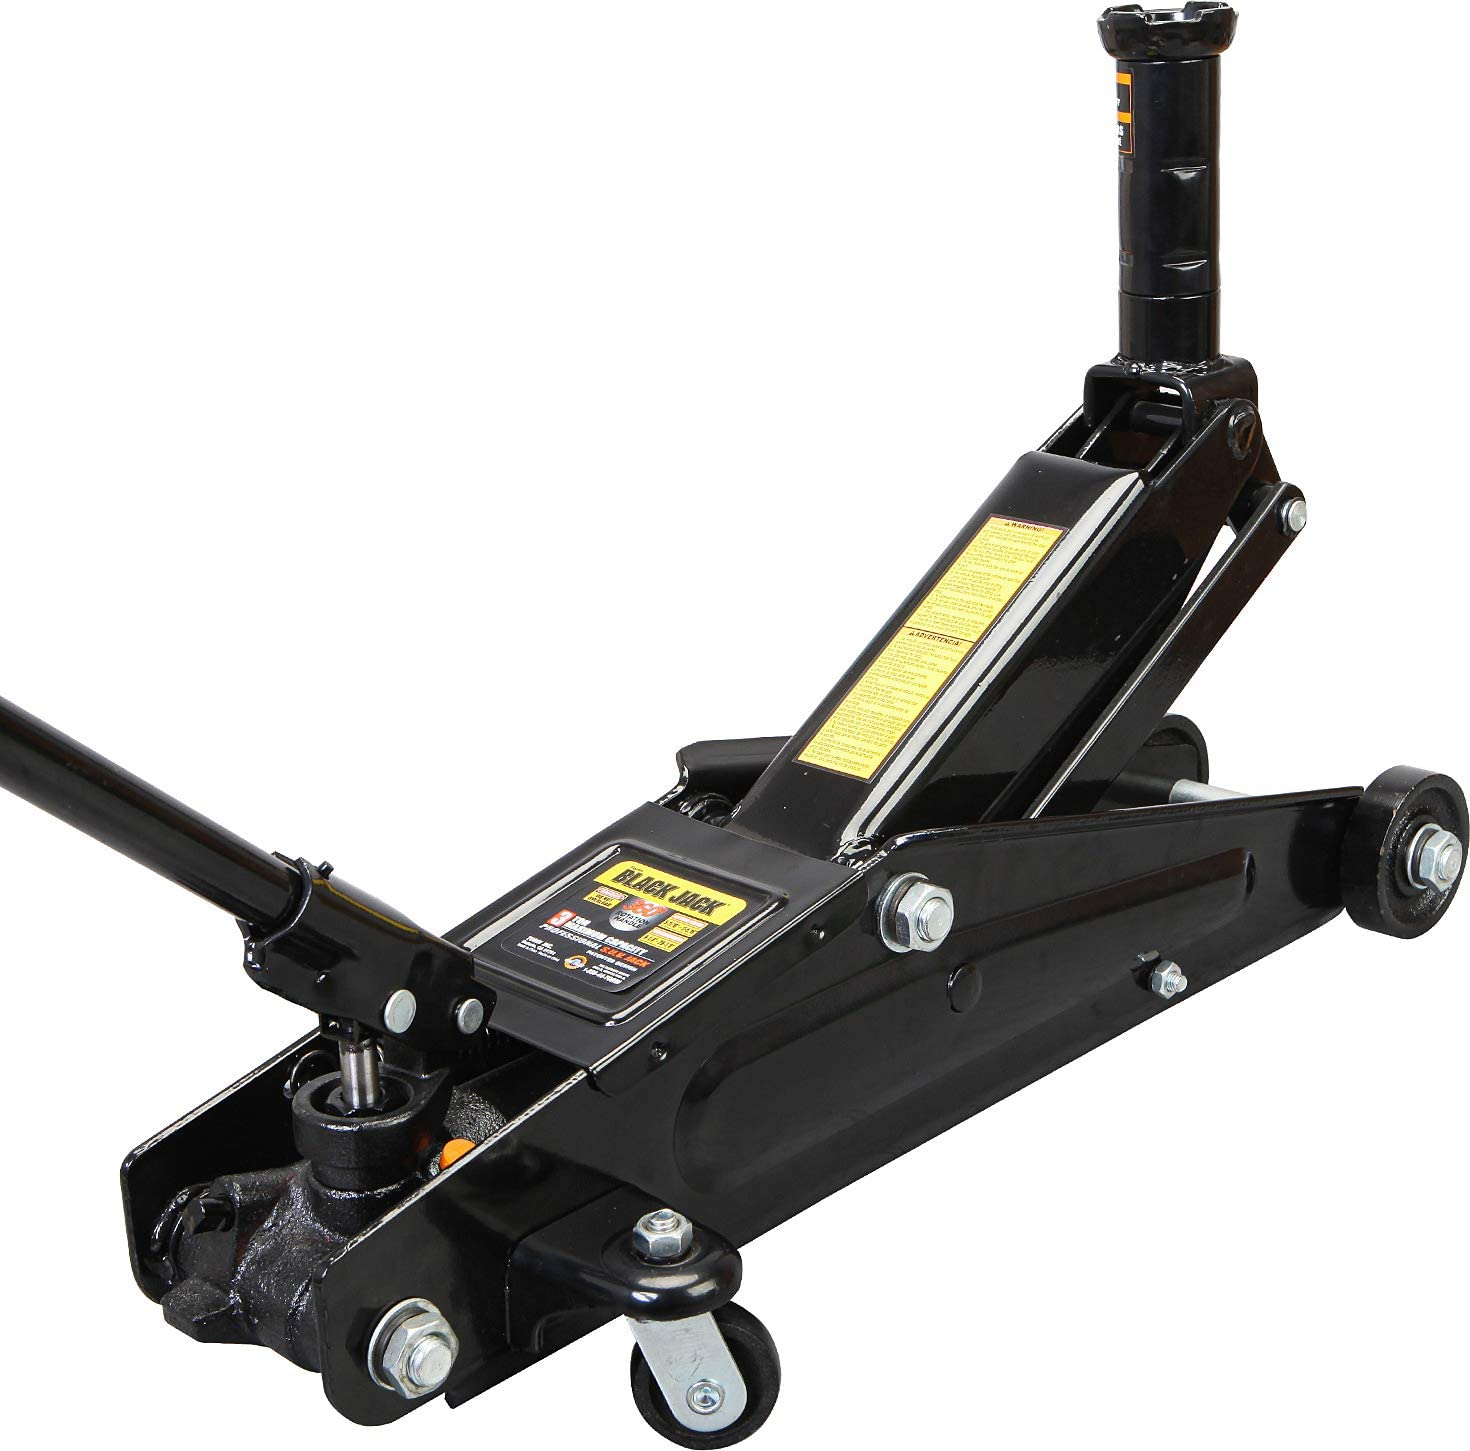 6,000 lb Torin A94117B Blackjack Hydraulic Trolley Service//Floor Jack Capacity : 3 Ton Black Fits: SUVs and Extended Height Trucks